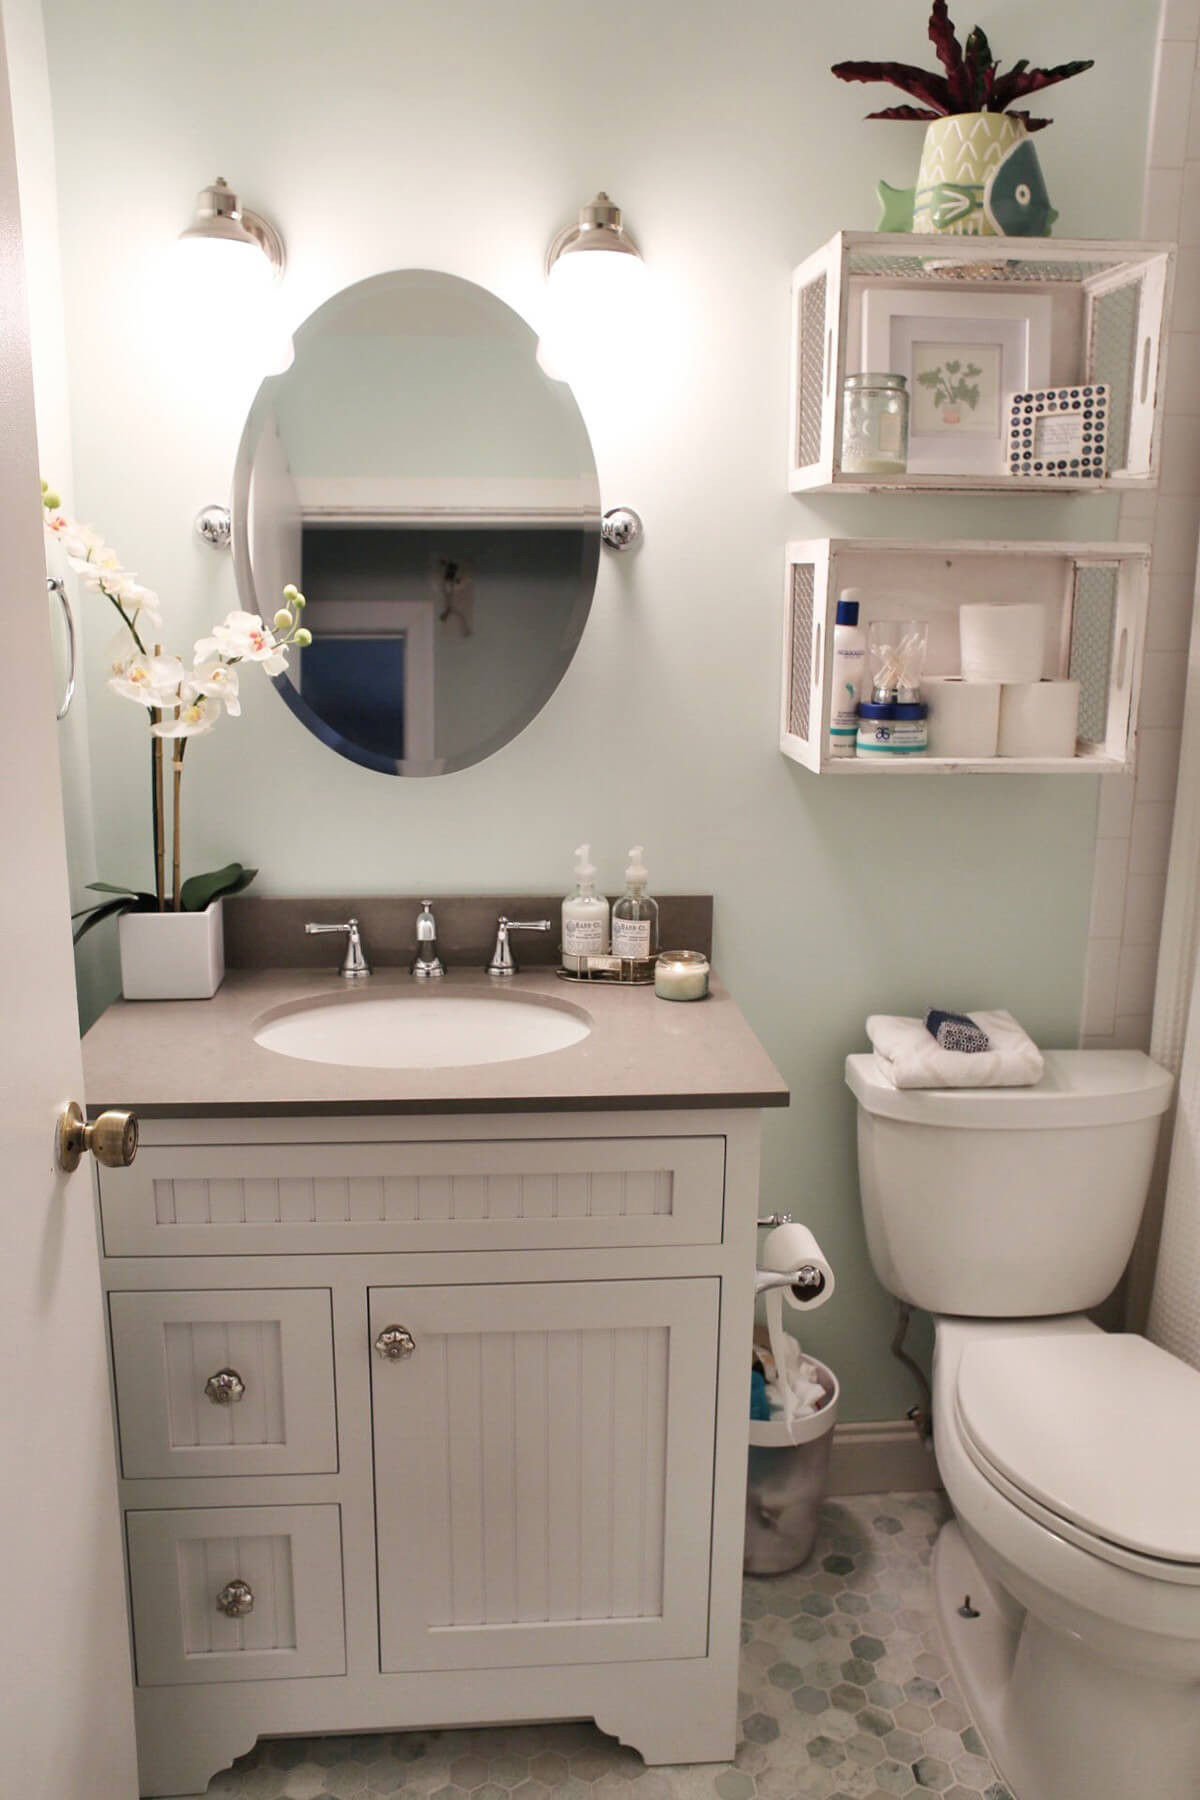 Bathroom Shelf Over Toilet Wonderful Best The Storage Ideas And Designs For Construction